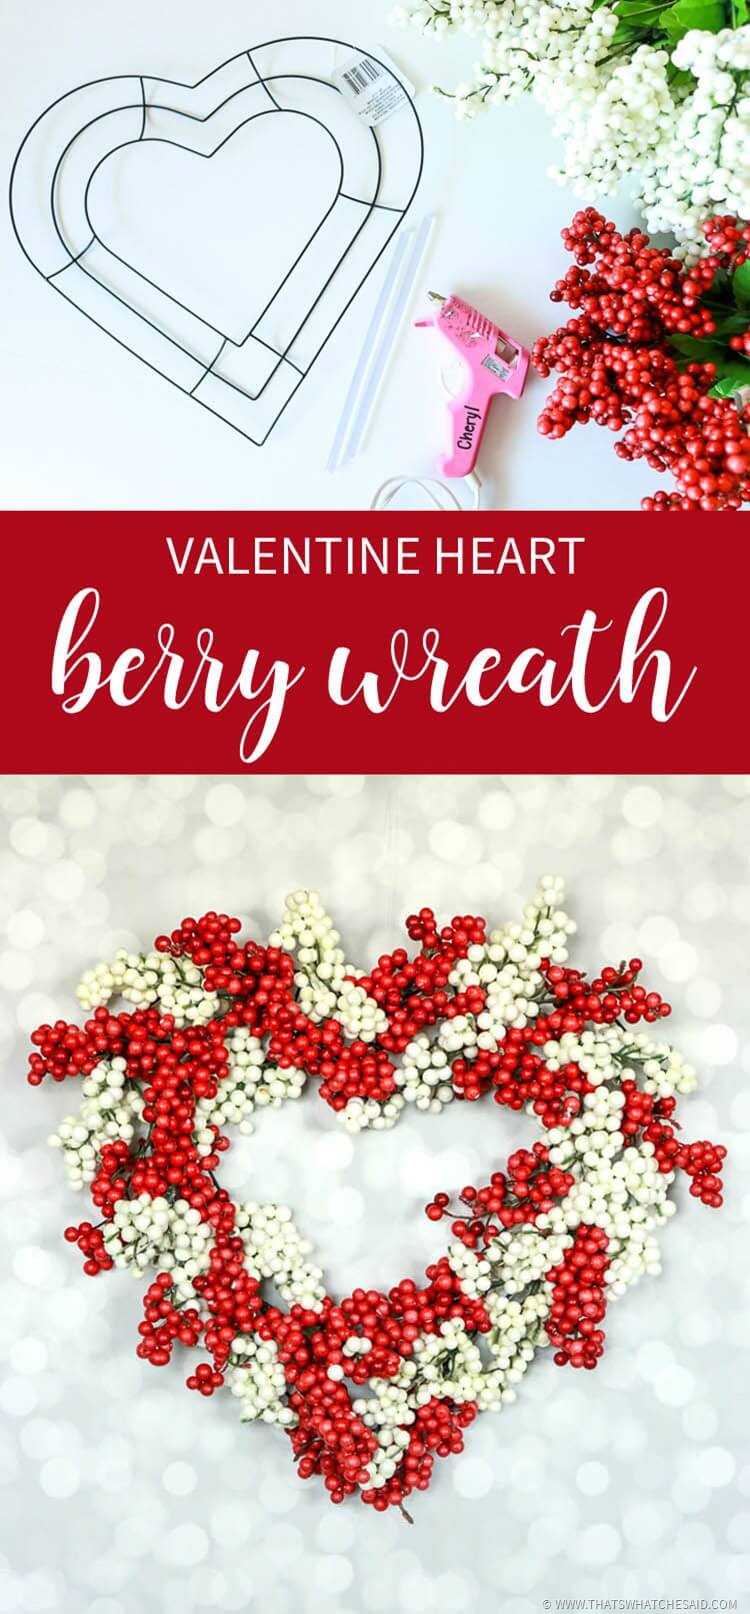 Valentine Heart Berry Wreath from Dollar Store Supplies